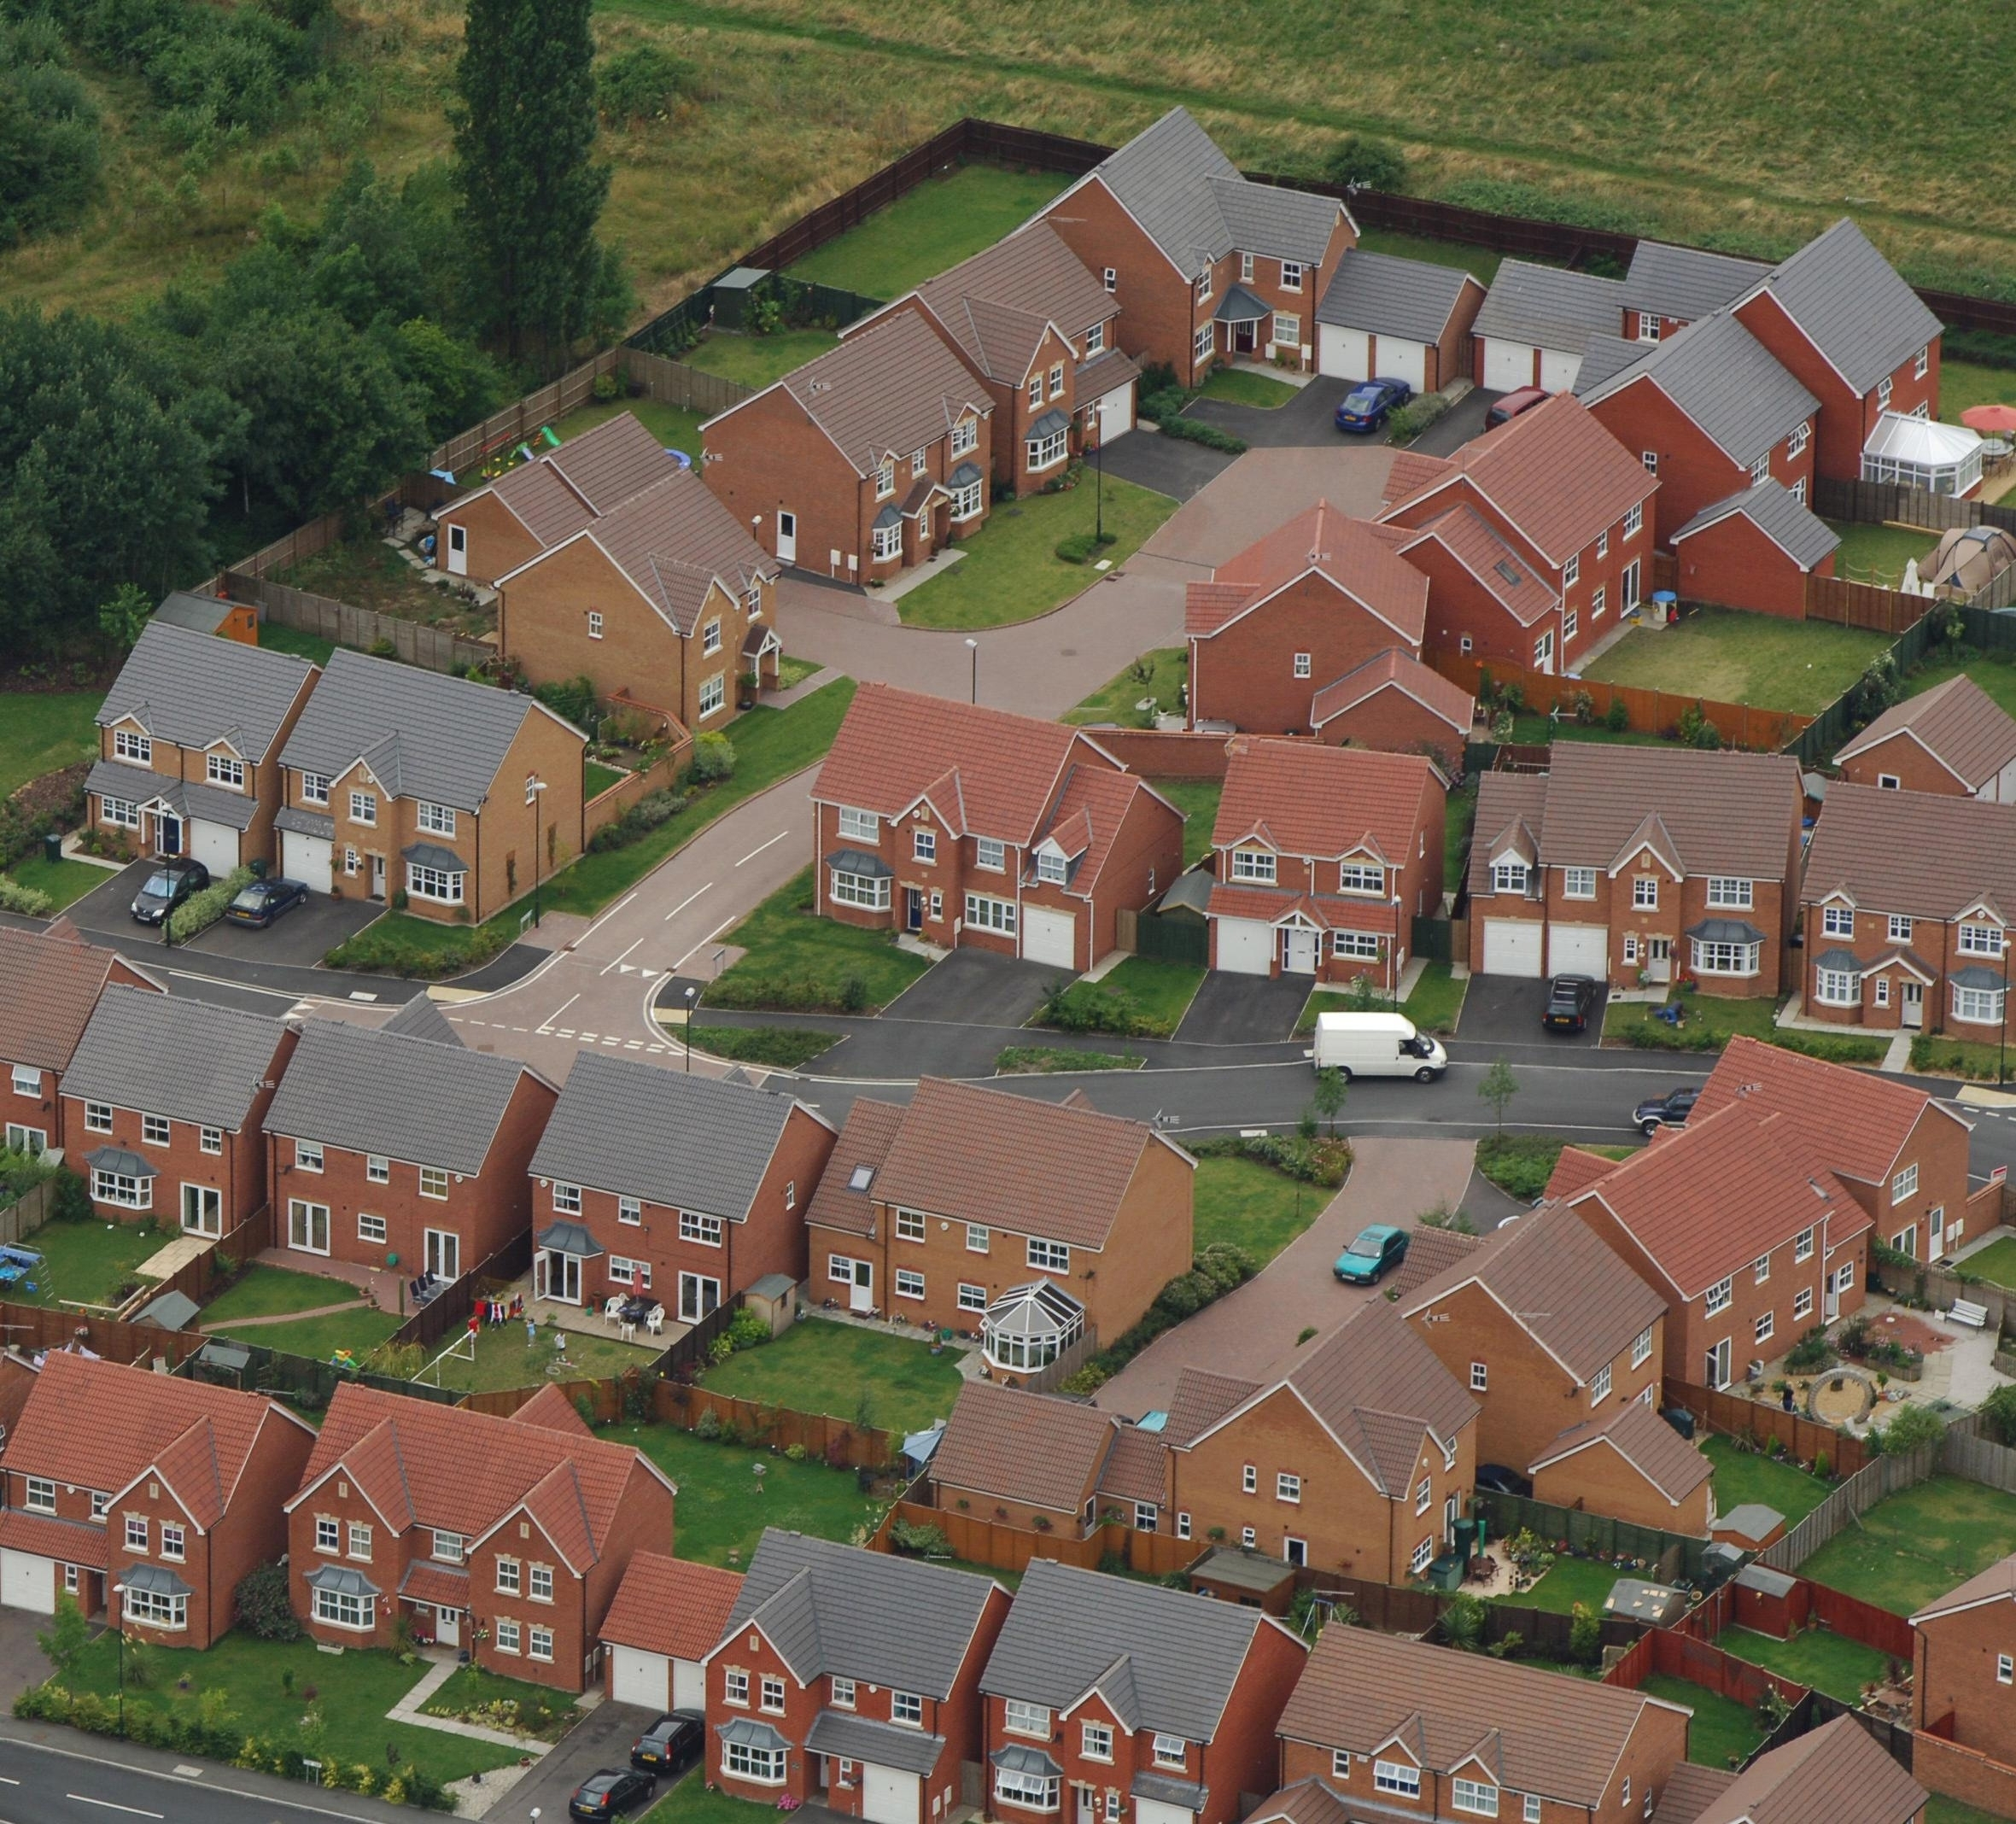 Aerial view of a housing estate near Coventry. House prices edged up 0.2% last month as the average cost of a home remained close to levels seen at the start of the year, the Halifax said Friday August 5, 2005. The bank's monthly update showed the ann